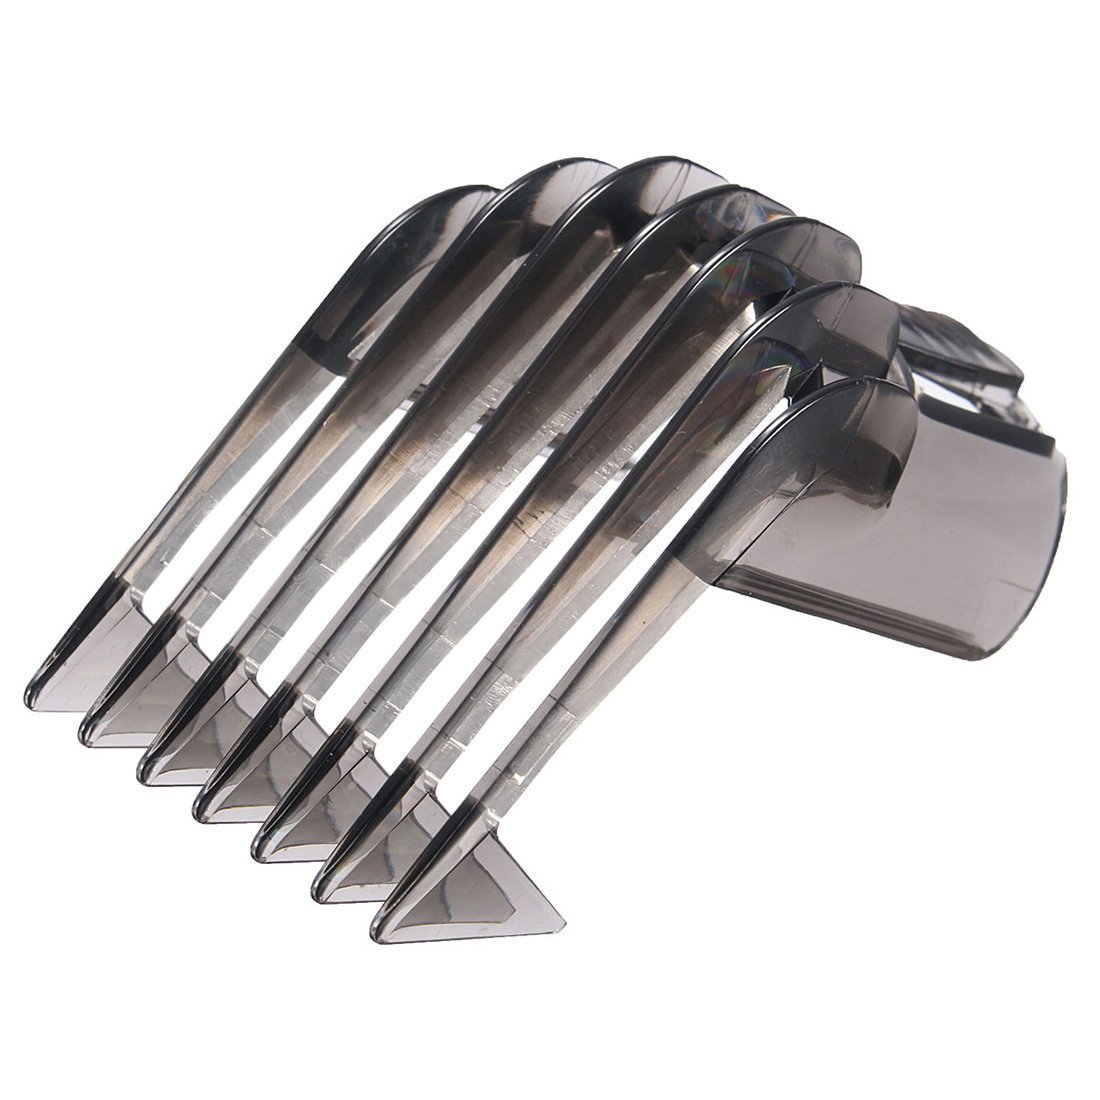 SODIAL(R) Hair Clippers Beard Trimmer comb attachment for Philips QC5130 / 05/15/20/25/35 3-21mm